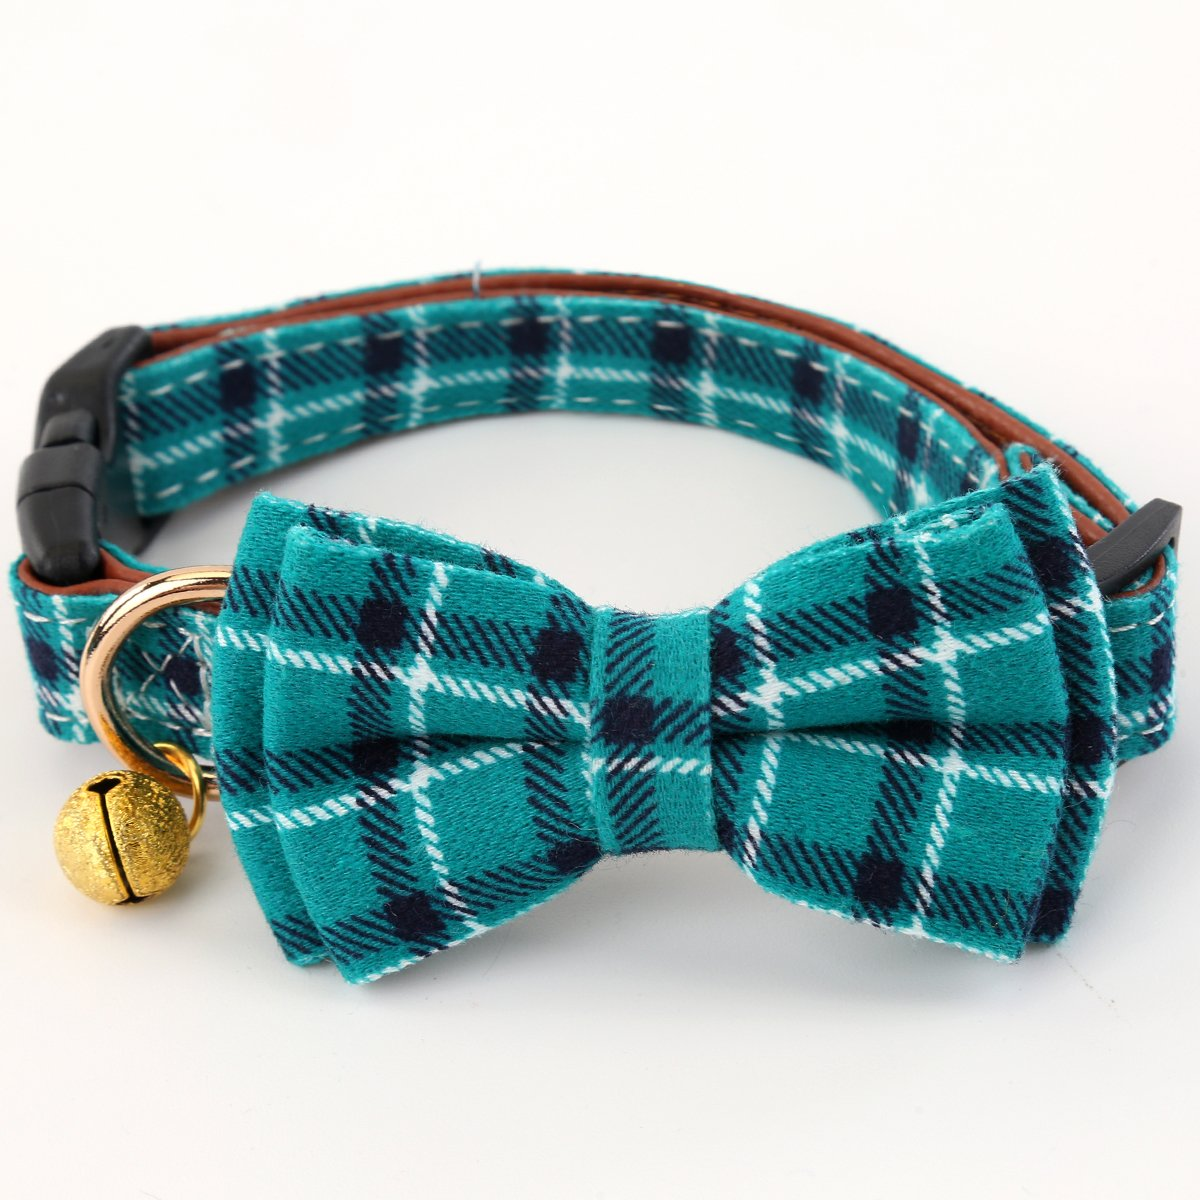 Green Grid S Green Grid S ADPET Bell Cat and Dog Collar with Bowtie Cute Plaid Bowtie,Soft and Comfortable,Adjustable Bowtie Collar for Small Medium   Large Dogs